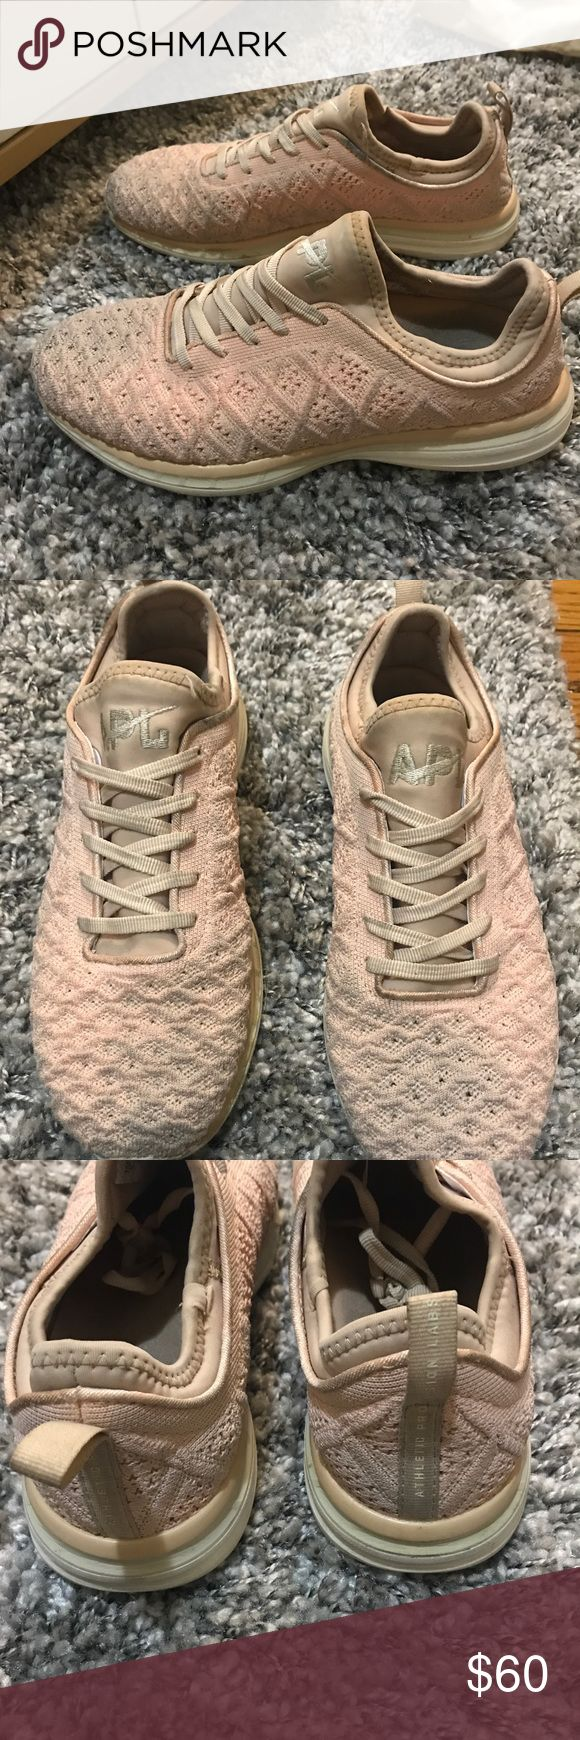 Blush APL Sneakers Super cute blush sneakers! They are used, but still in great condition! APL Shoes Sneakers